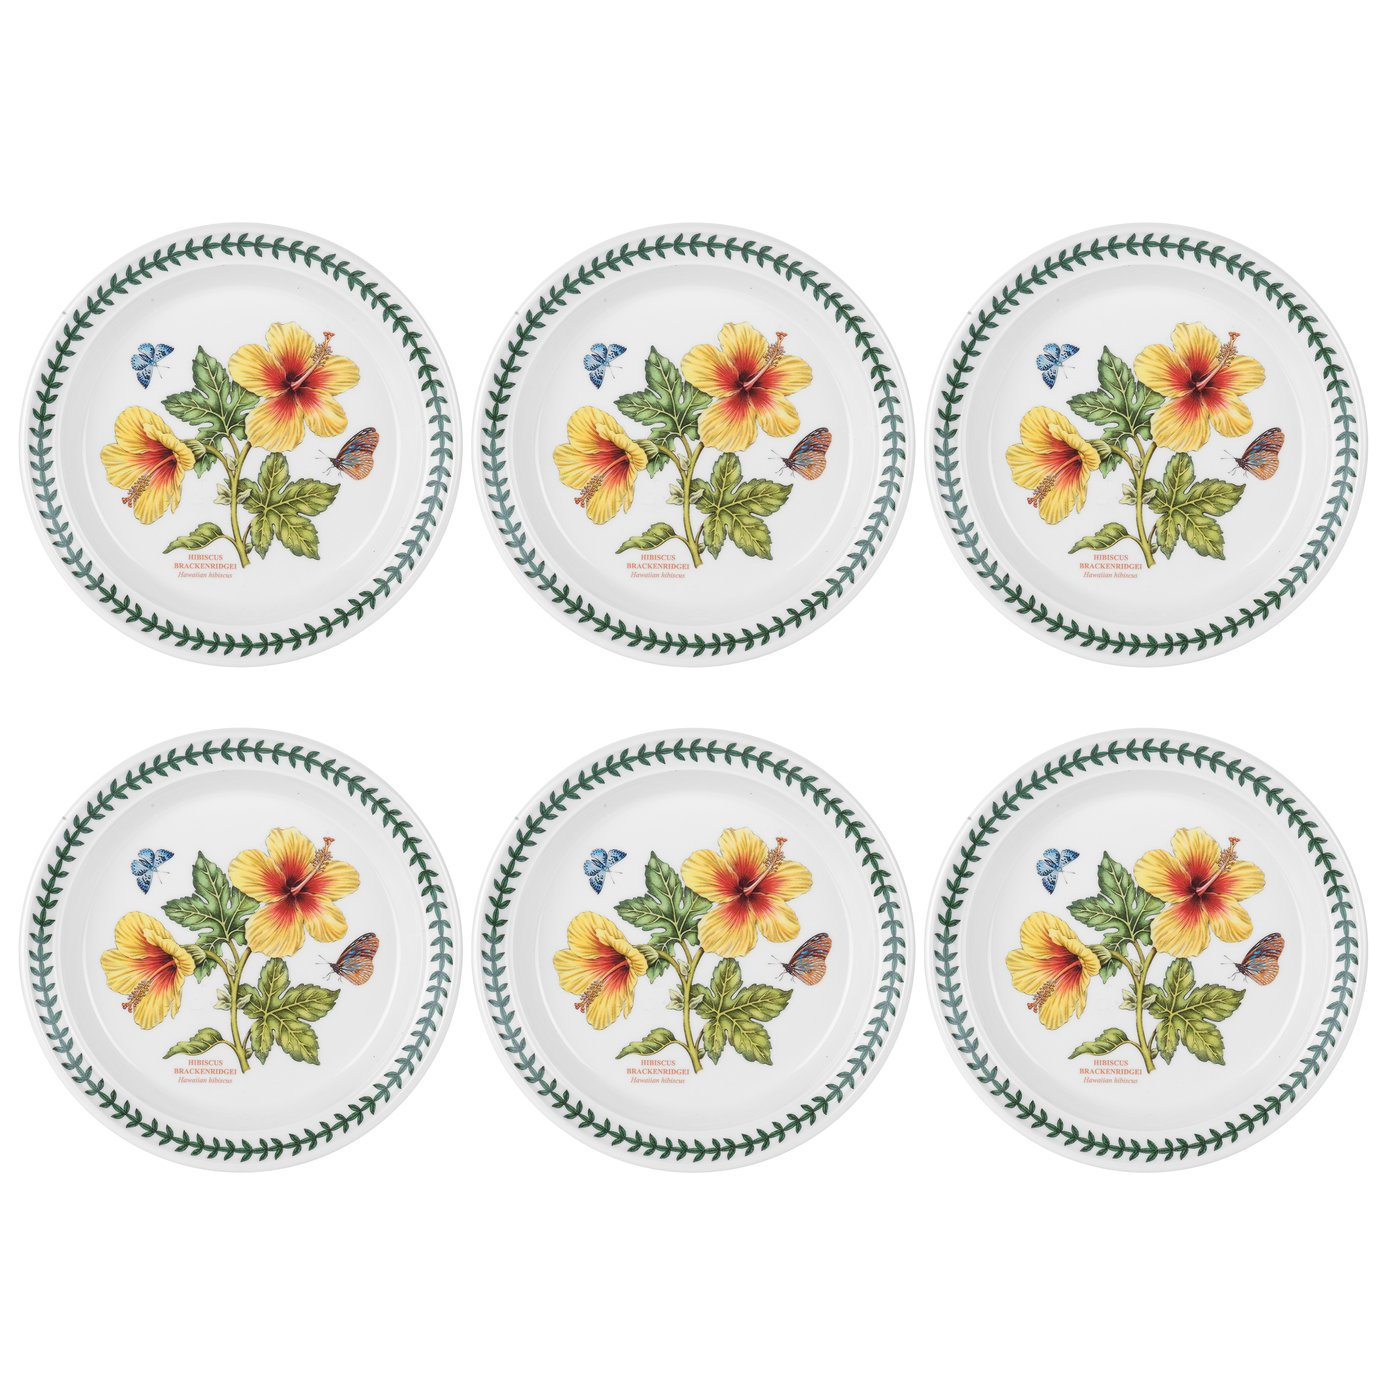 Portmeirion Exotic Botanic Garden Bread and Butter Plate with Hibiscus Motif, Set of 6